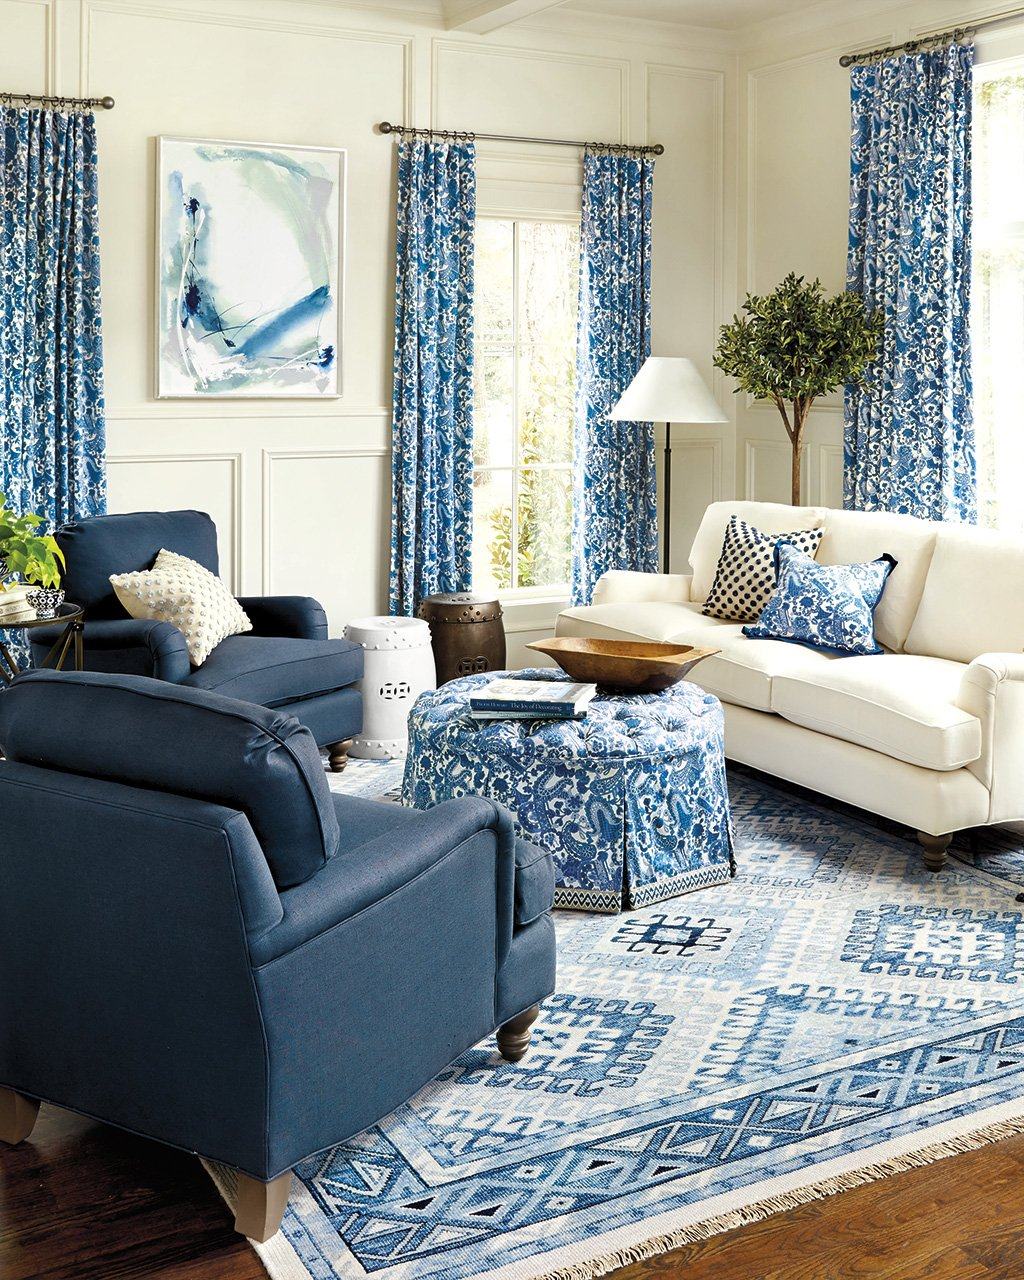 15 ways to layout your living room how to decorate shop charlotte drapery panel charlotte pillow eton sofa hayes ottoman ballard designs classic garden seat and more